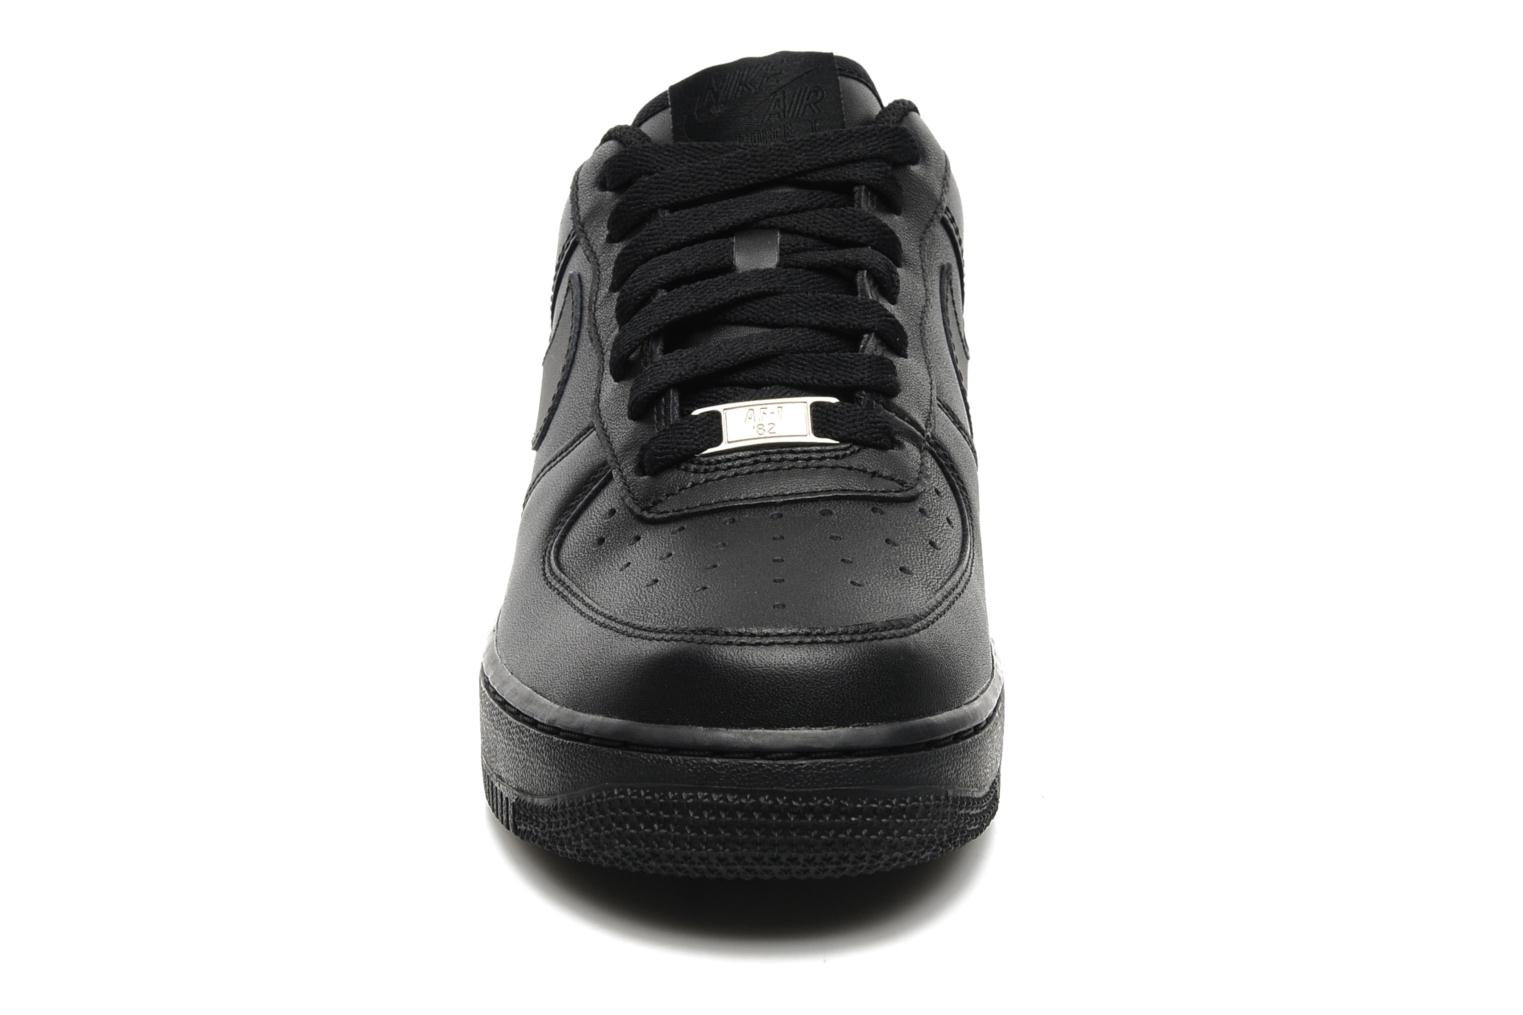 Nike Air Force 1 '07 Le Black fcYrXvLR